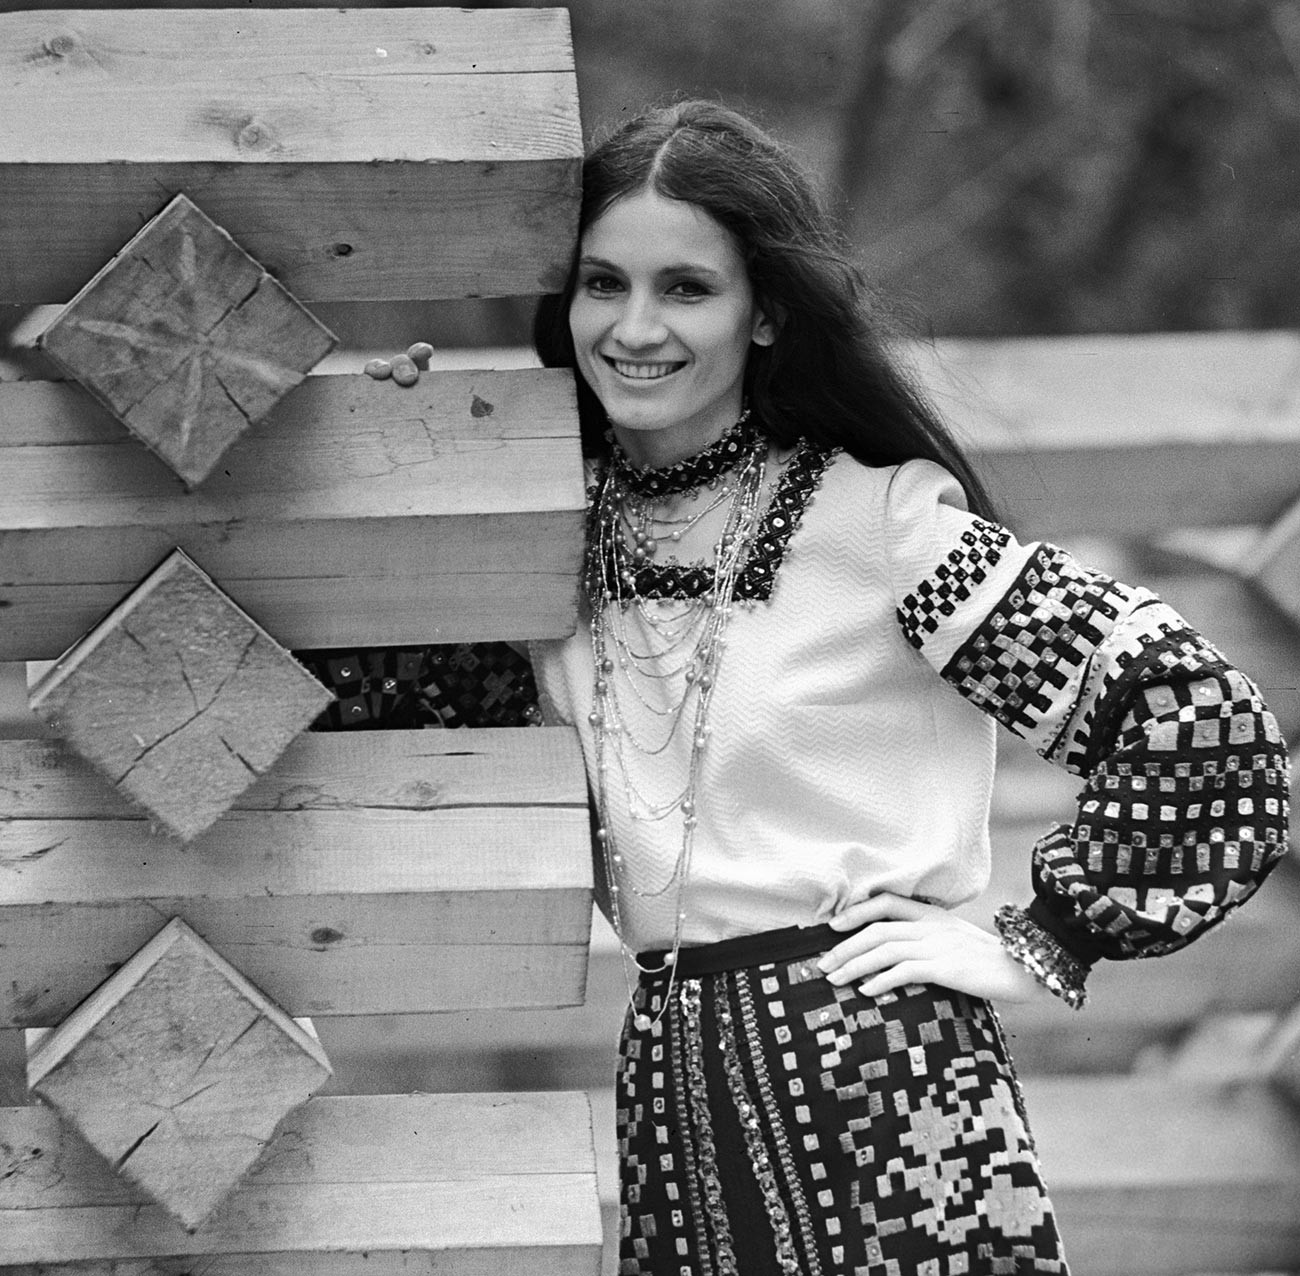 Sofia Rotaru, an ethnic Moldavian singer famous throughout the USSR (and still popular today), 1974